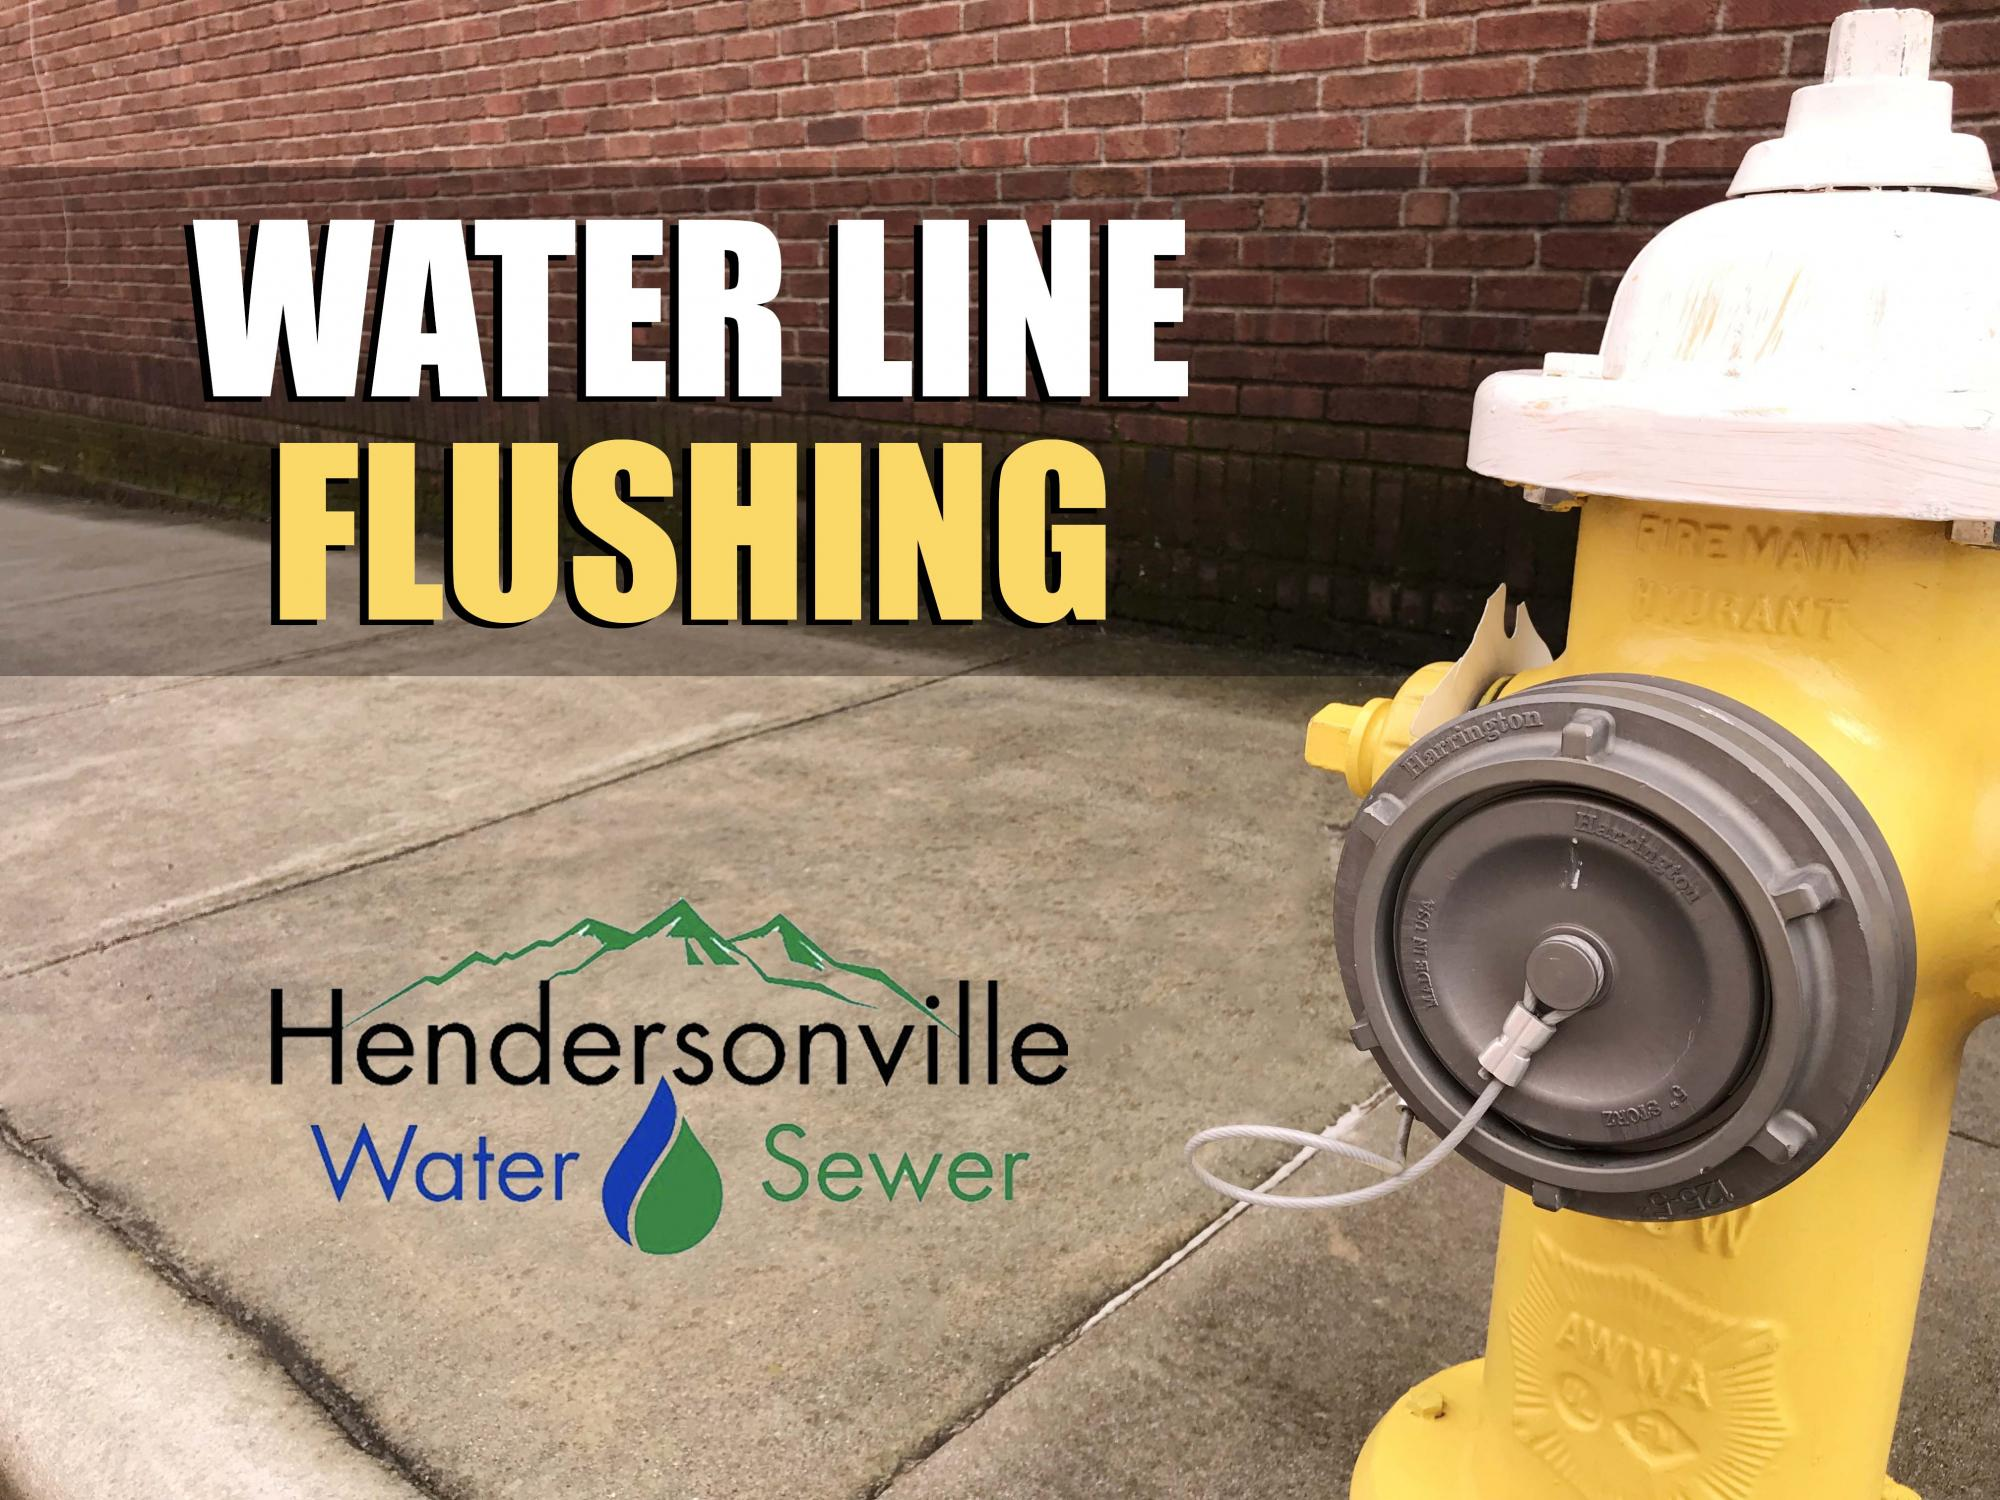 Water Line Flushing with photo of hydrant